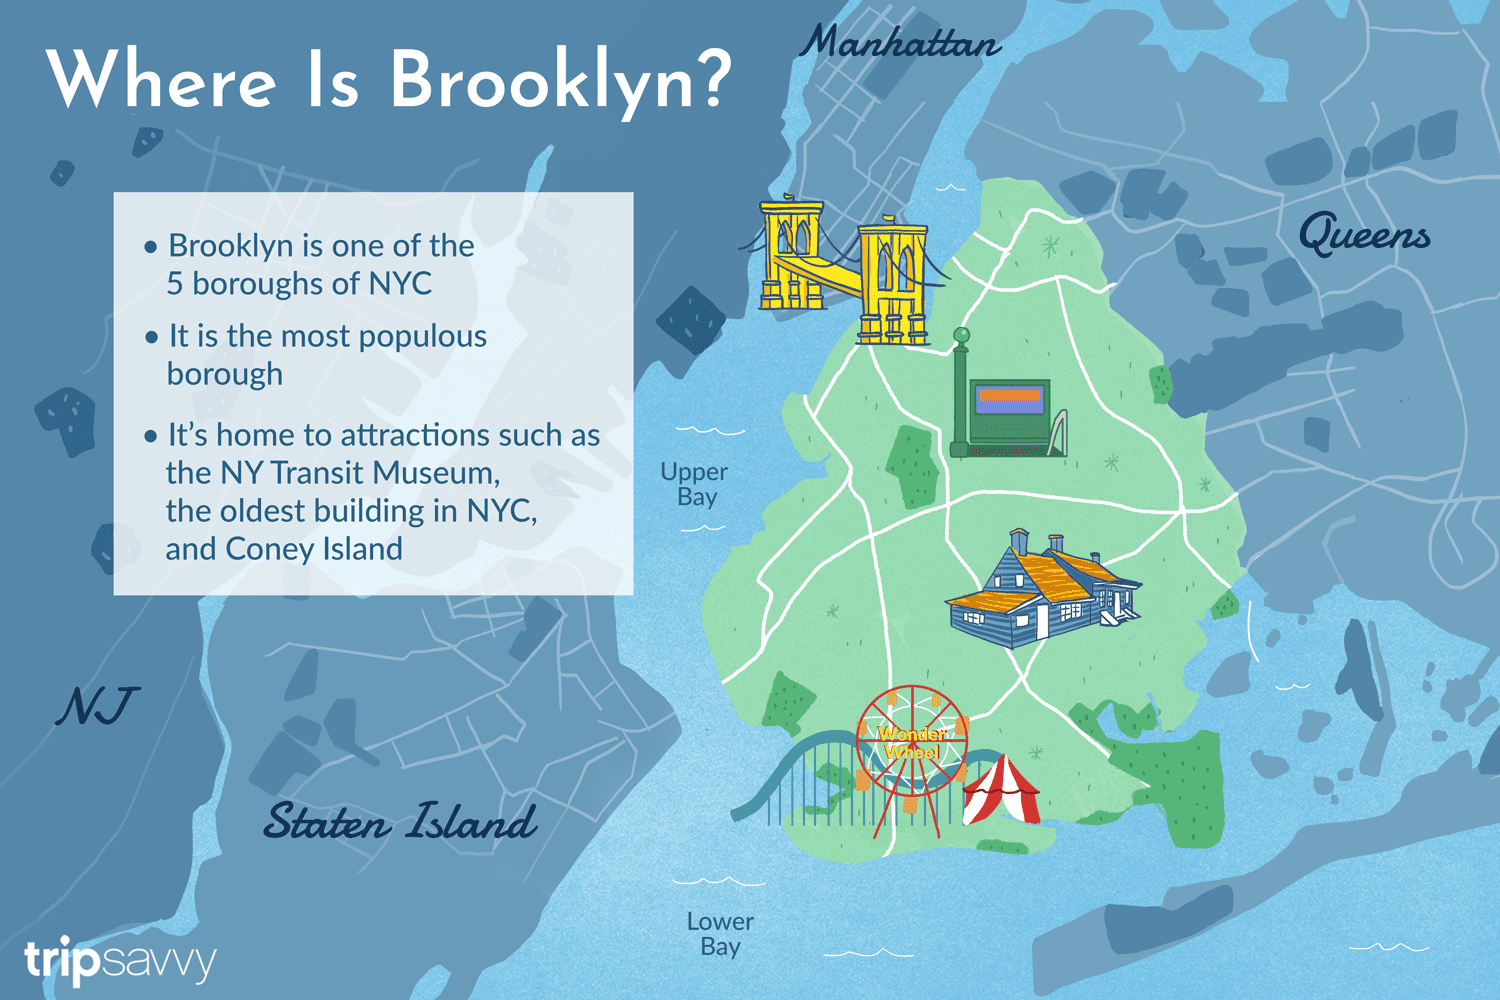 Where Is Brooklyn? In What County and City?